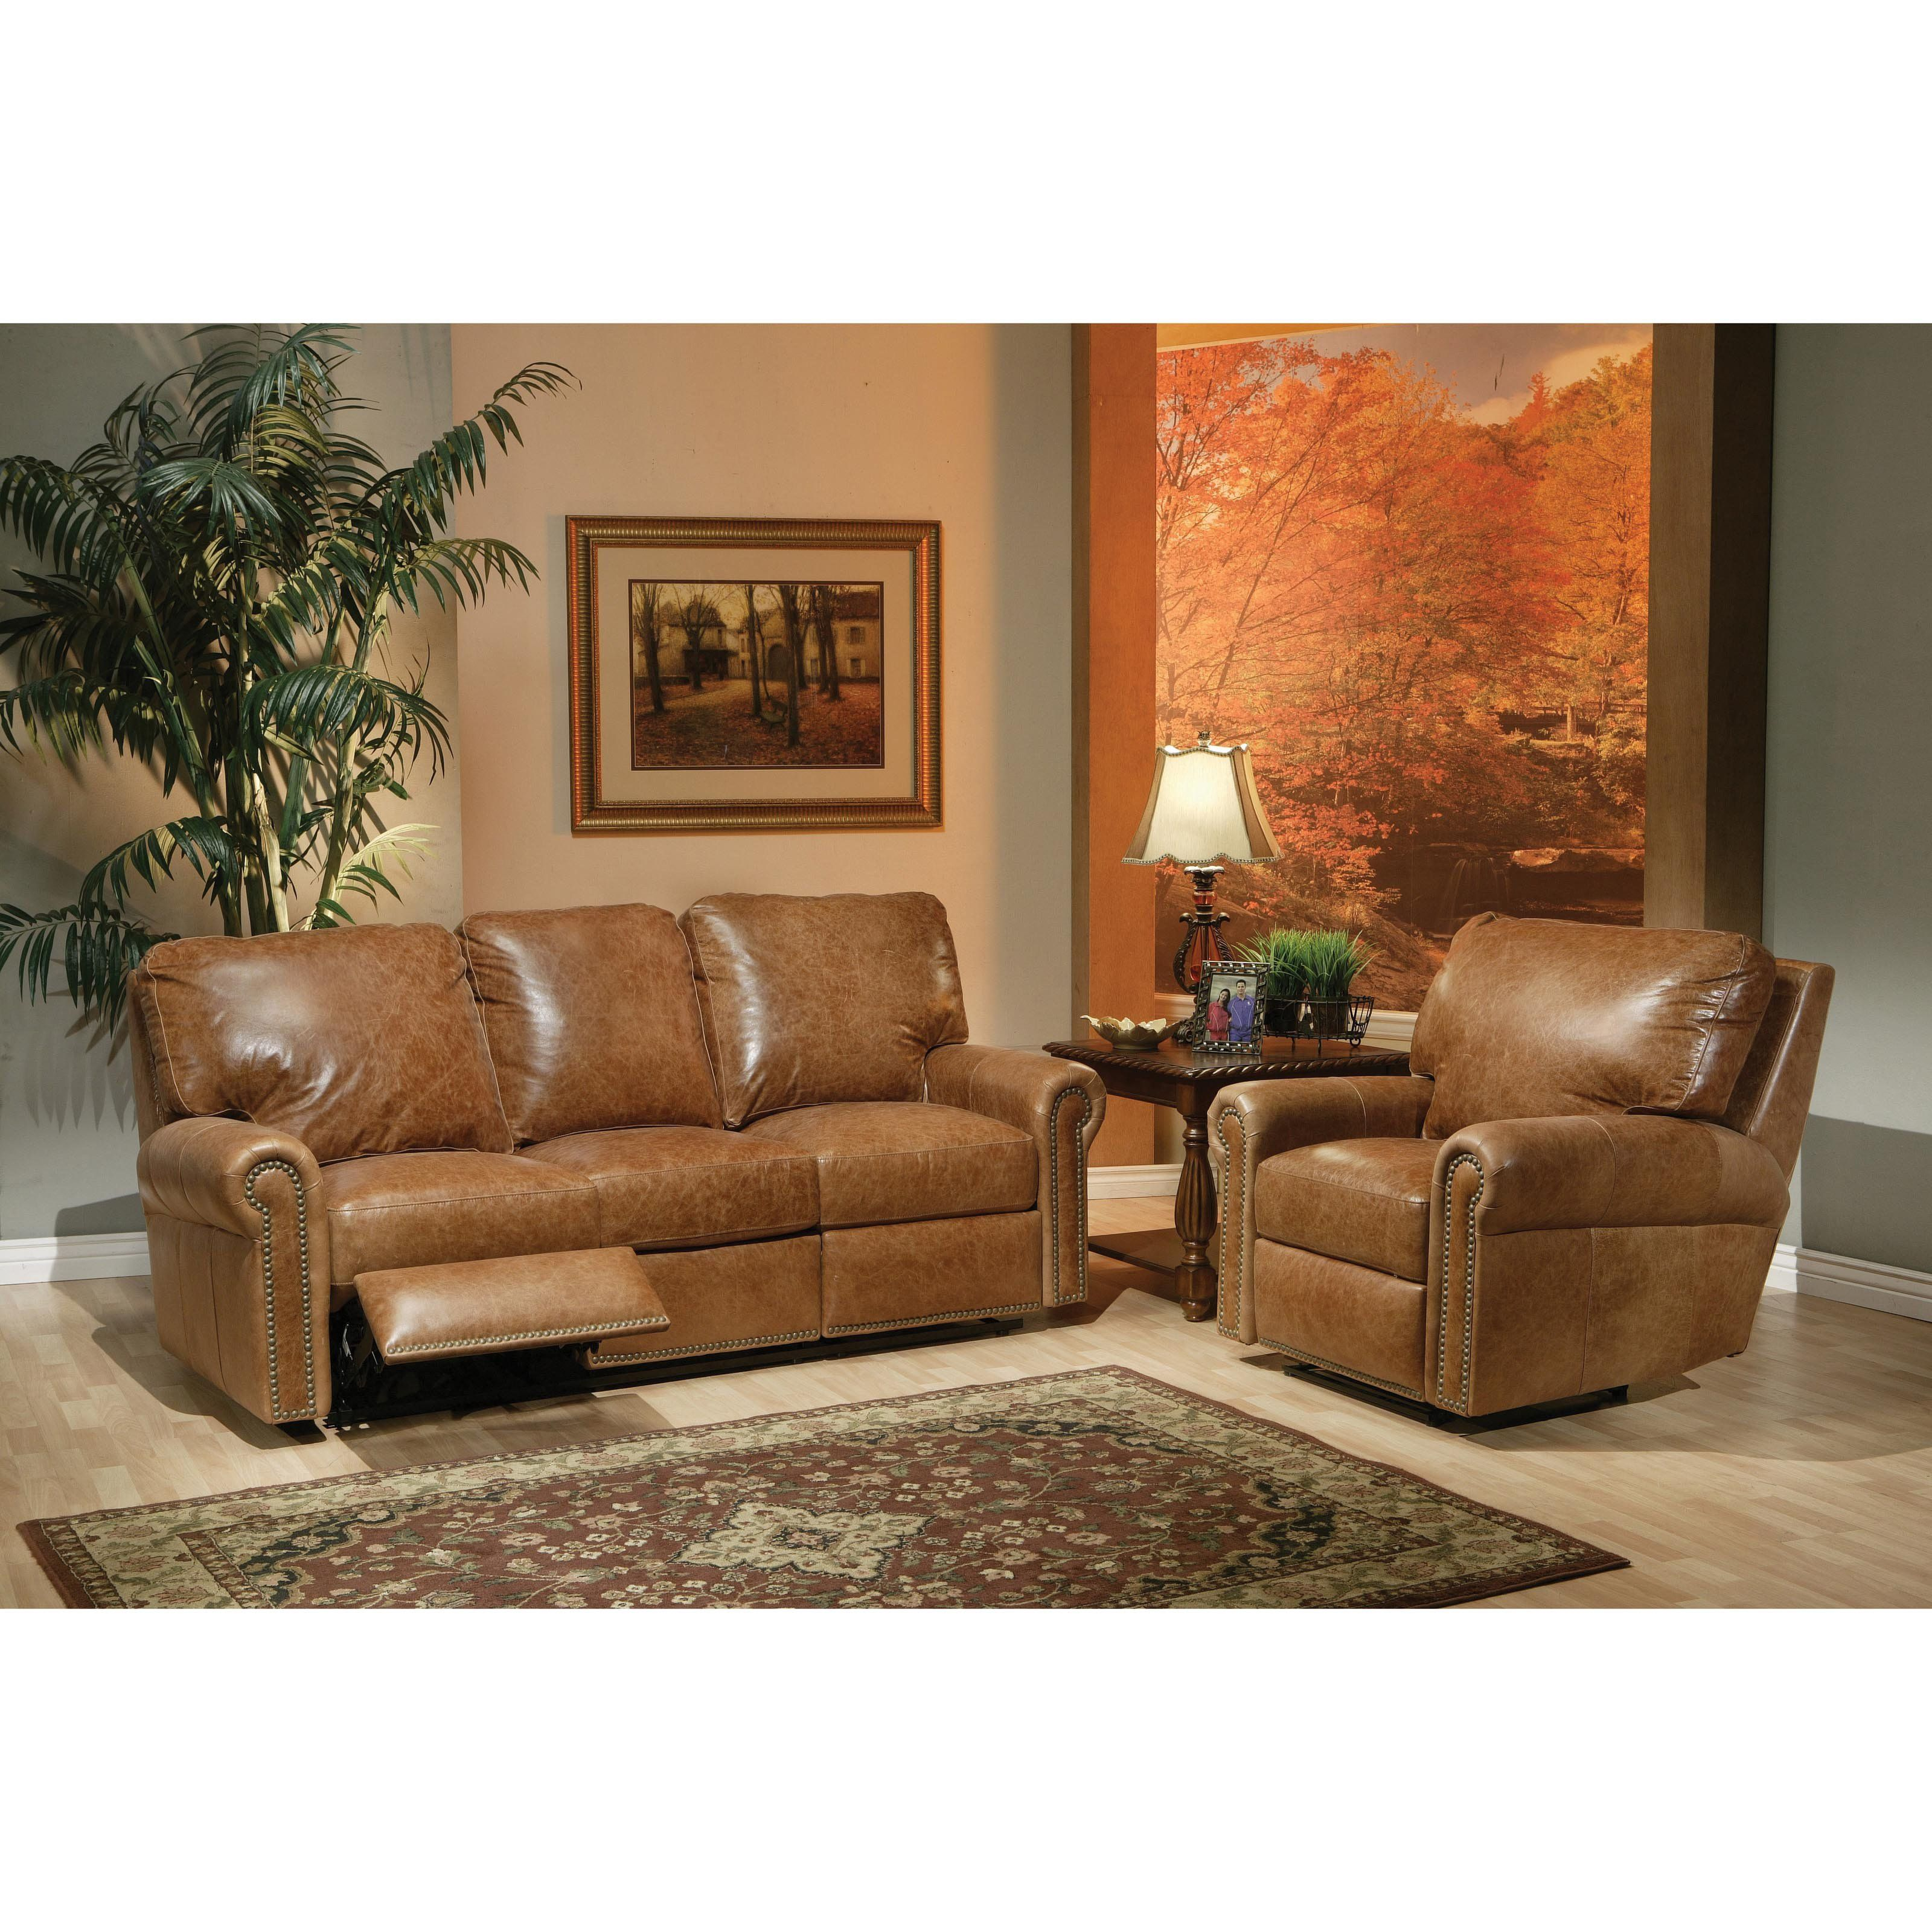 Superb Kathy Ireland Home By Omnia Furniture Fairfield Leather Recliner | From  Hayneedle.com